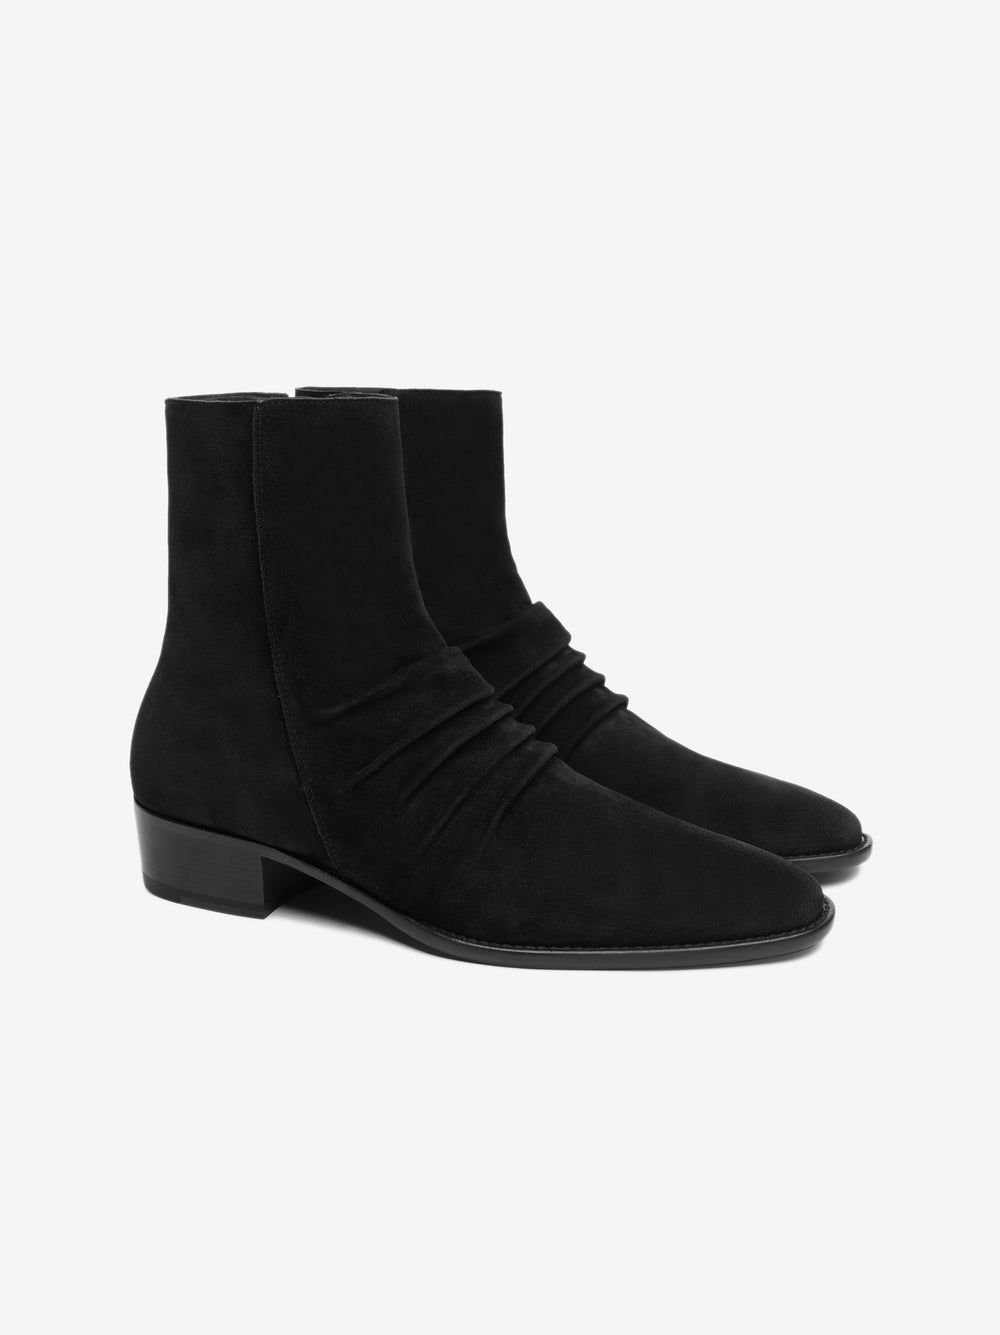 STACK BOOT LEATHER SOLE - BLACK / BLACK